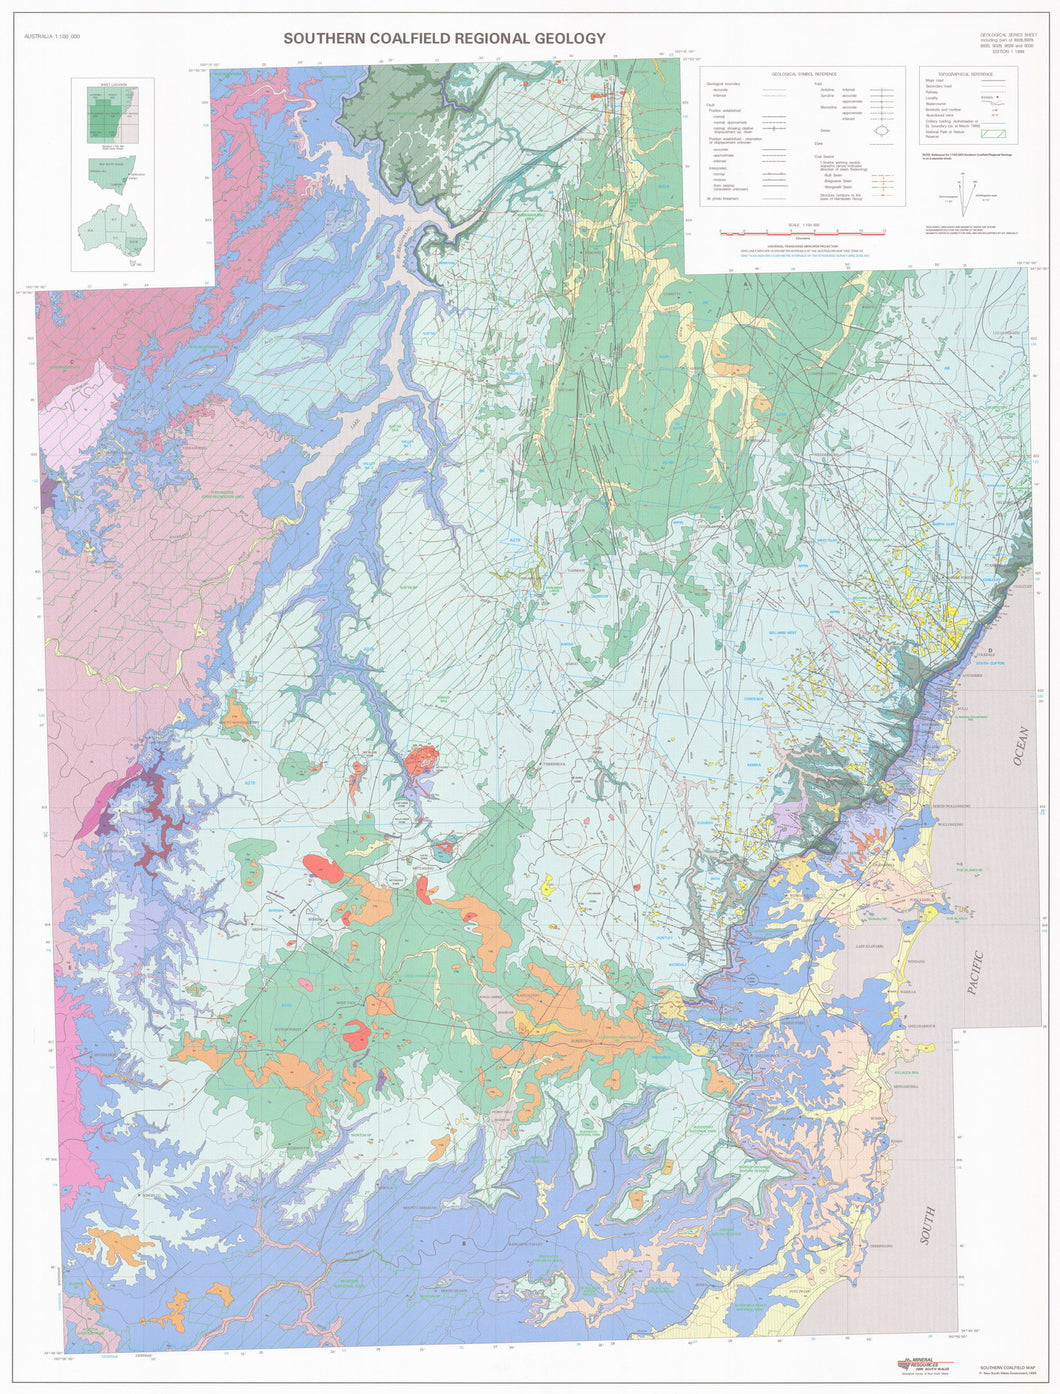 Image of Southern Coalfield Regional 1:100000 Geology map